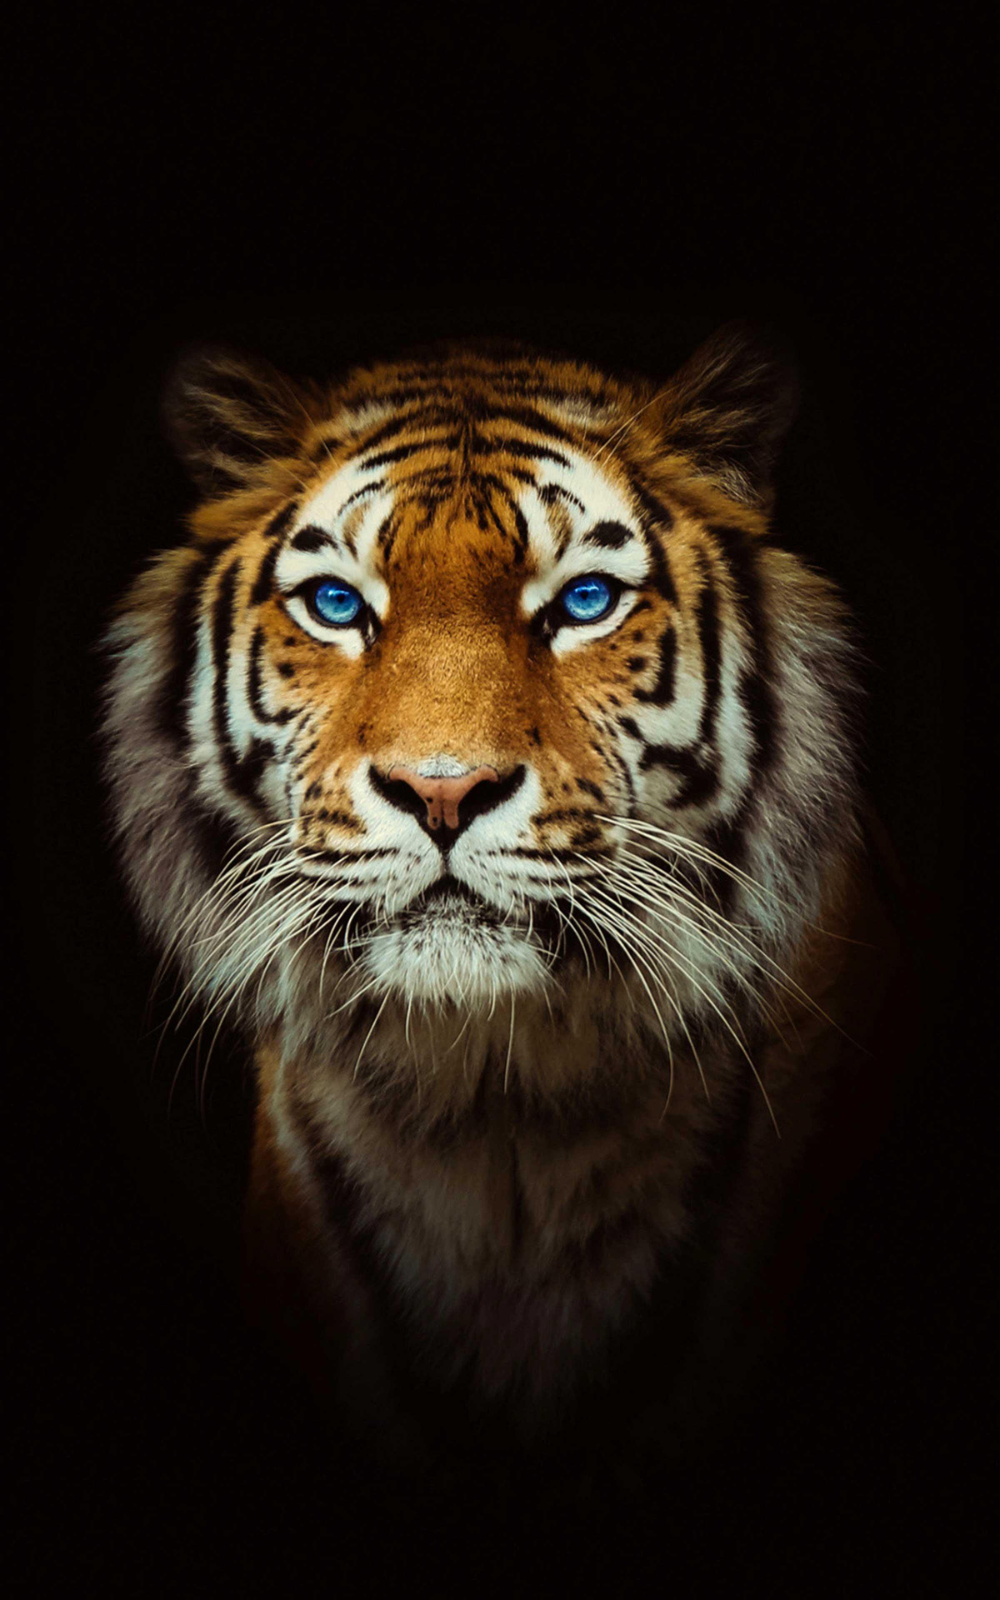 Tiger Wallpaper 4k Best Cool Tiger Tiger Wallpaper Tiger Wallpaper Iphone Tiger Pictures